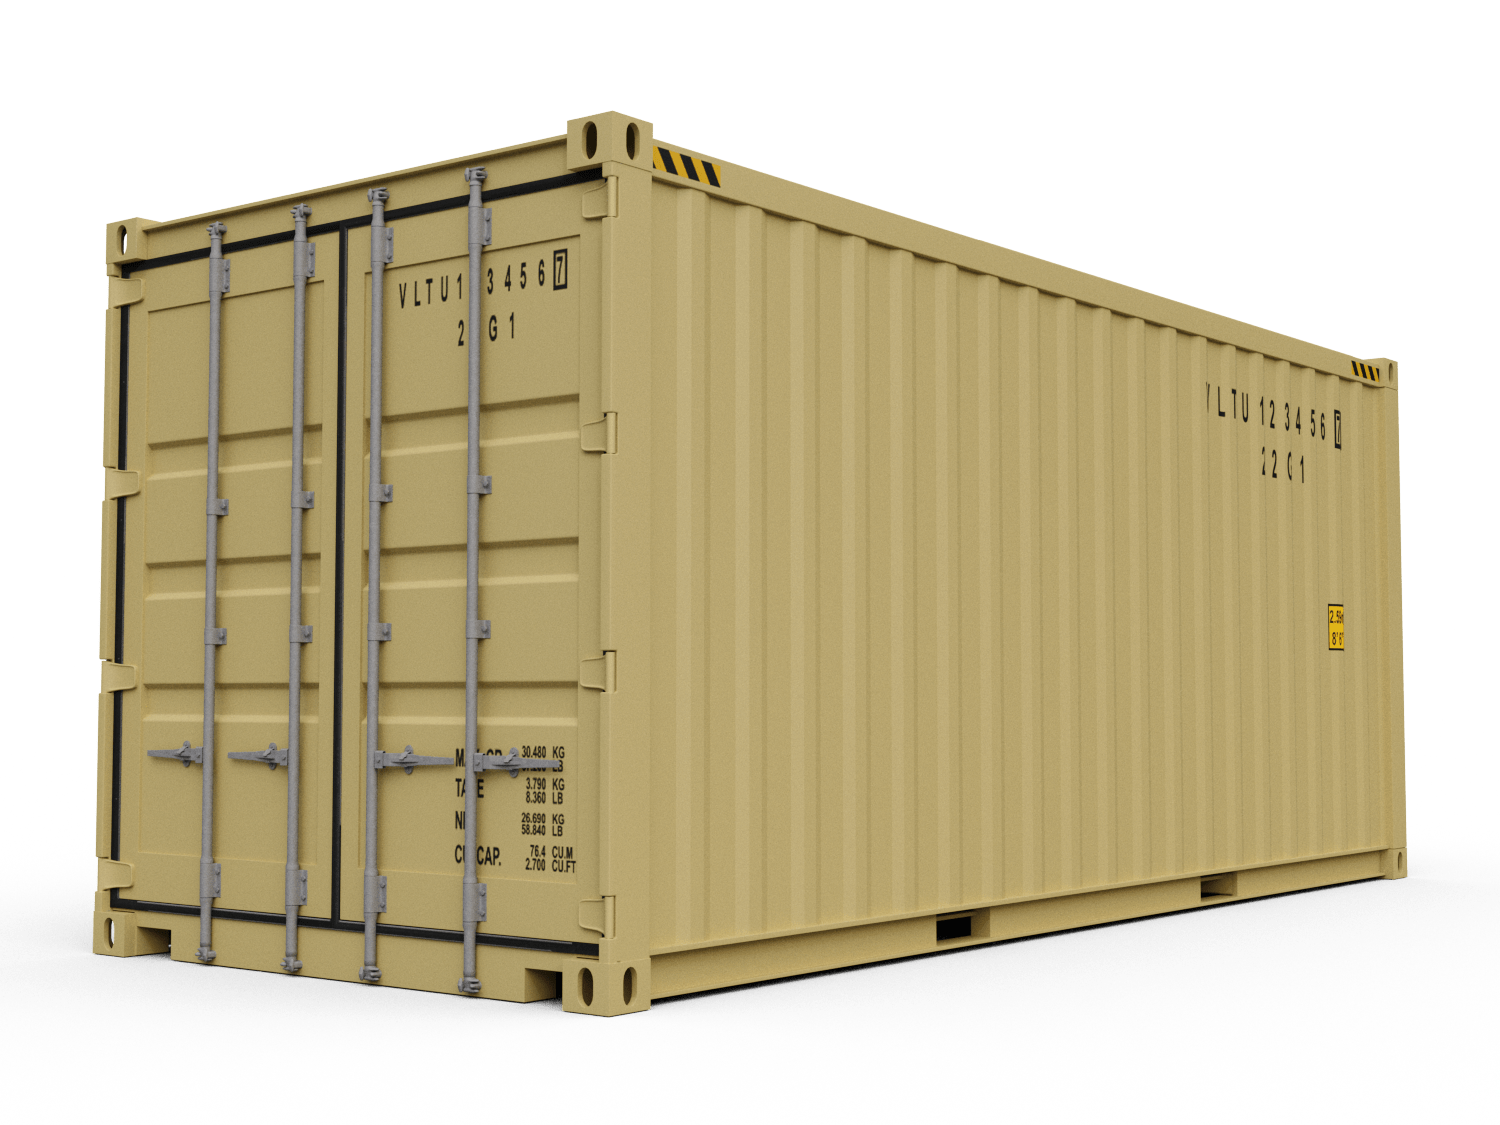 20 Foot Shipping Containers For Sale